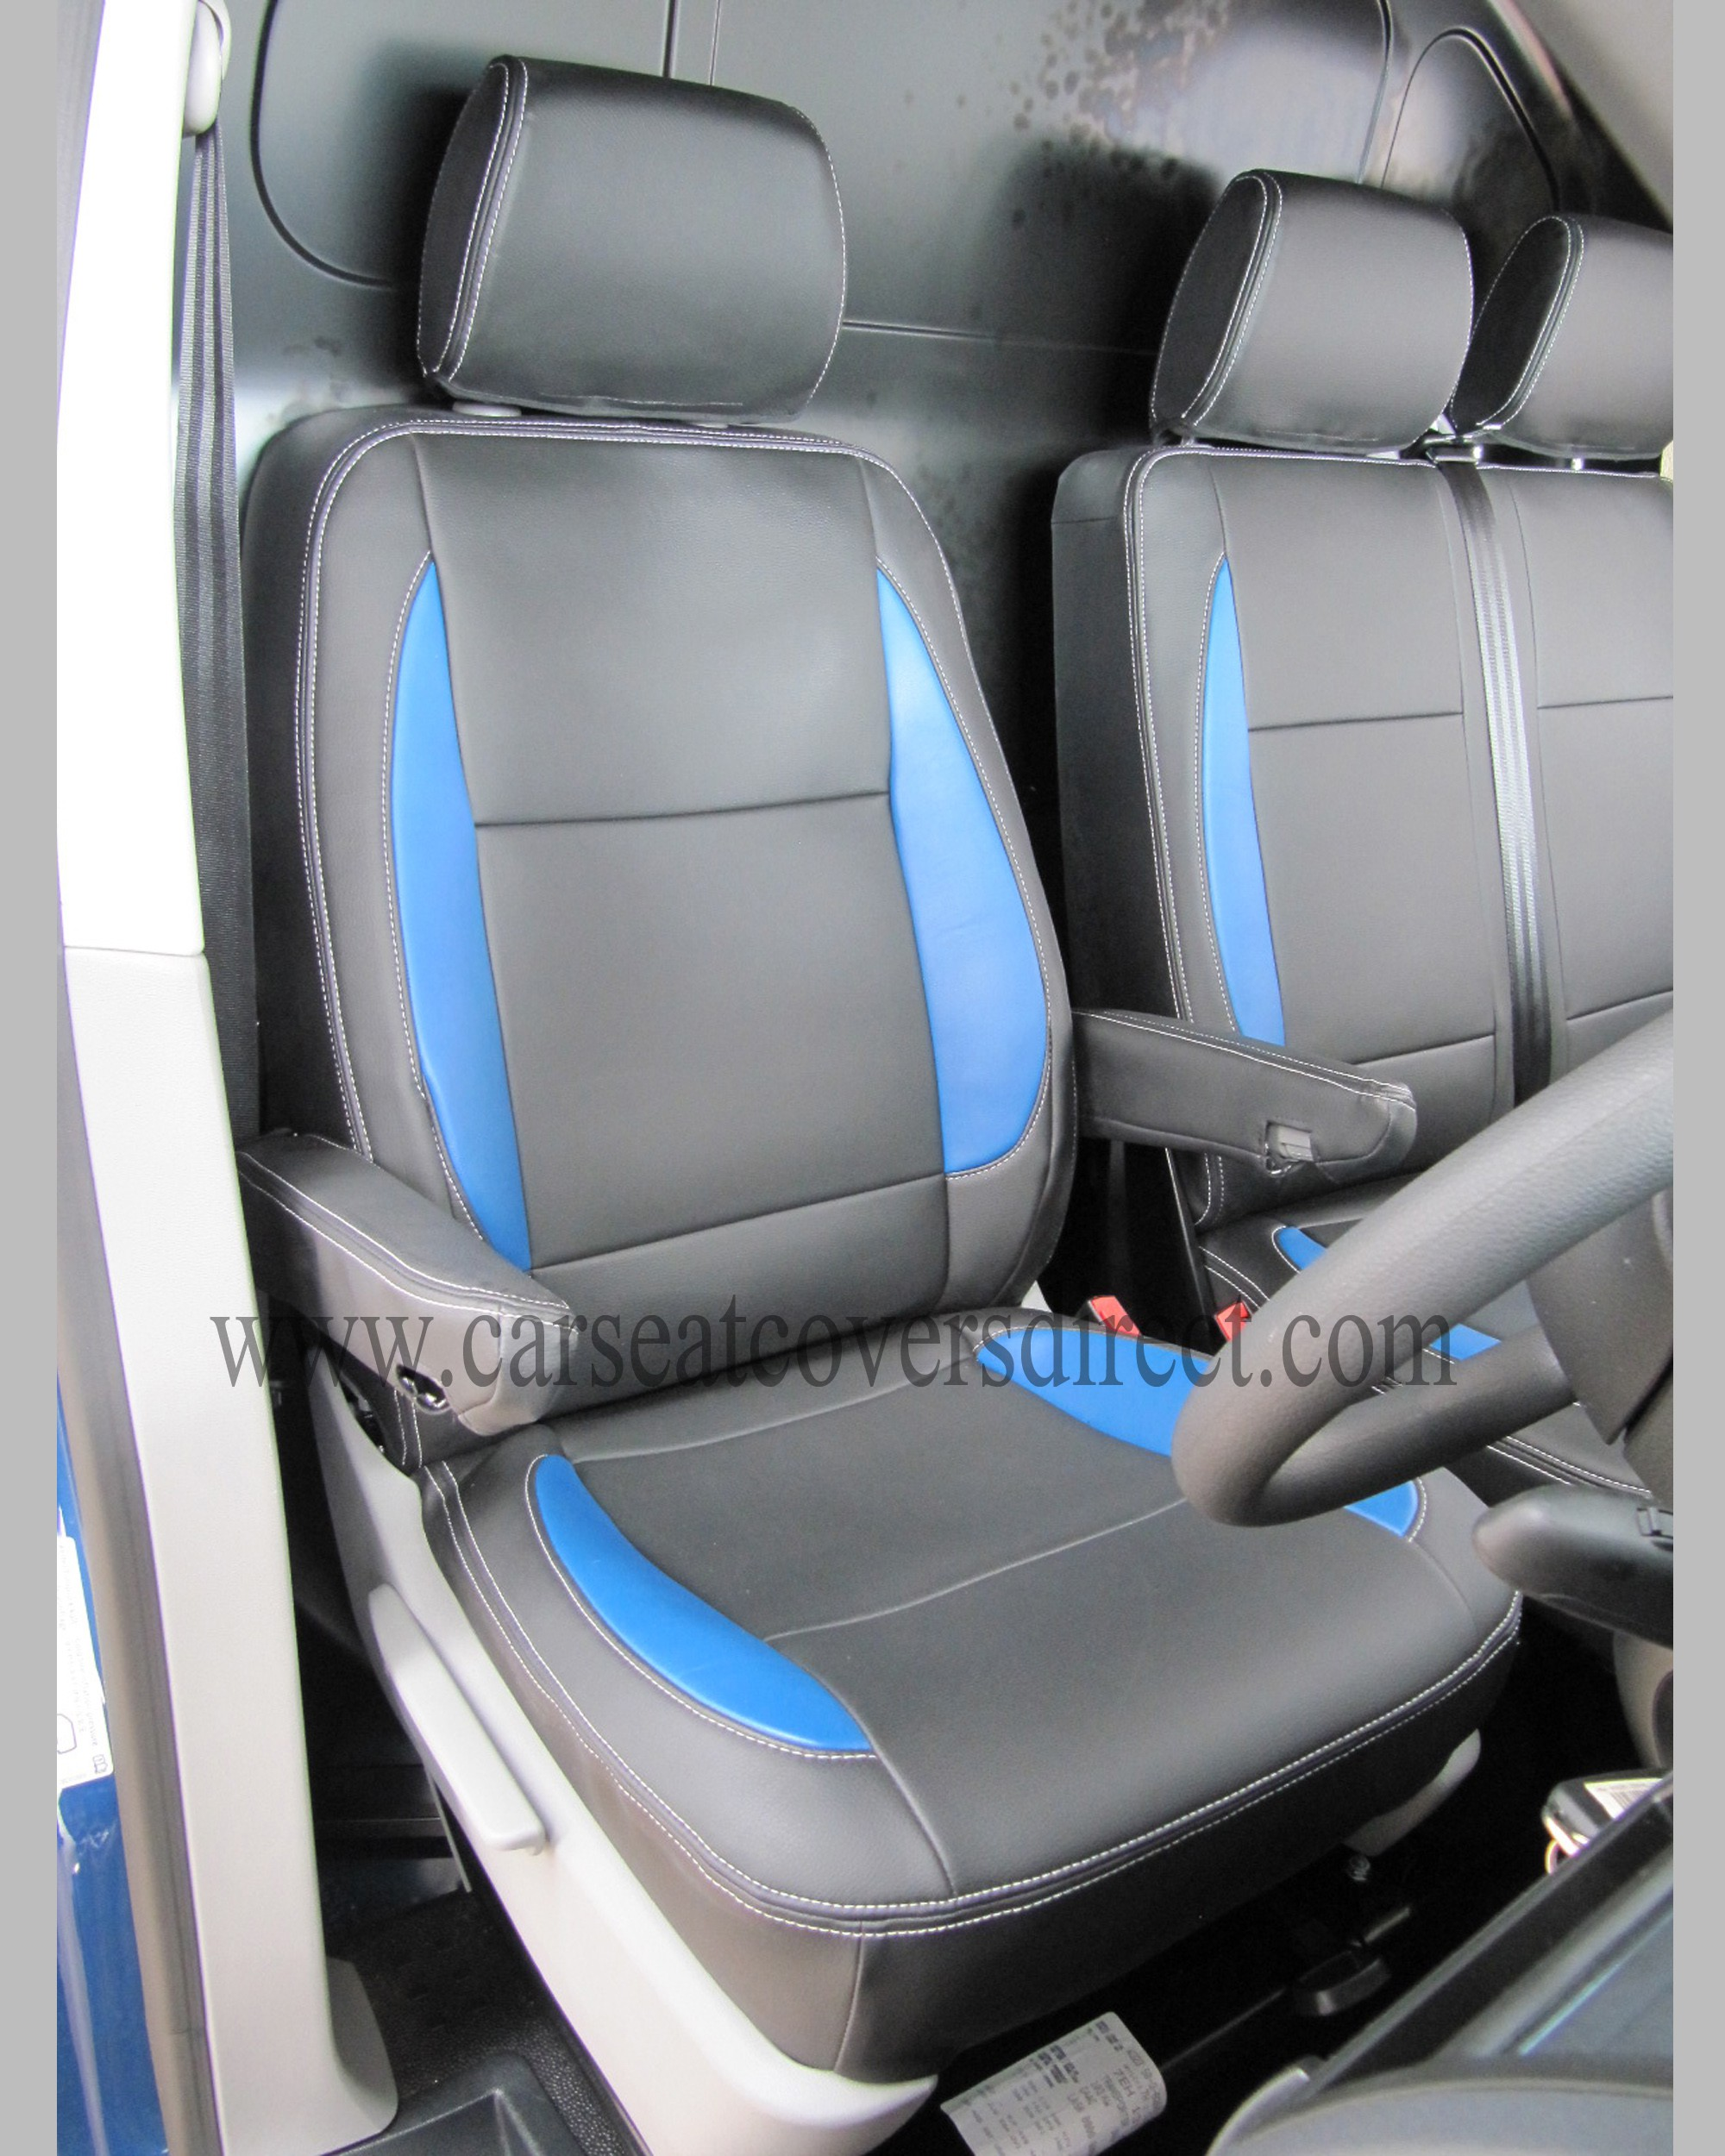 VW Transporter T5 black and blue seat covers